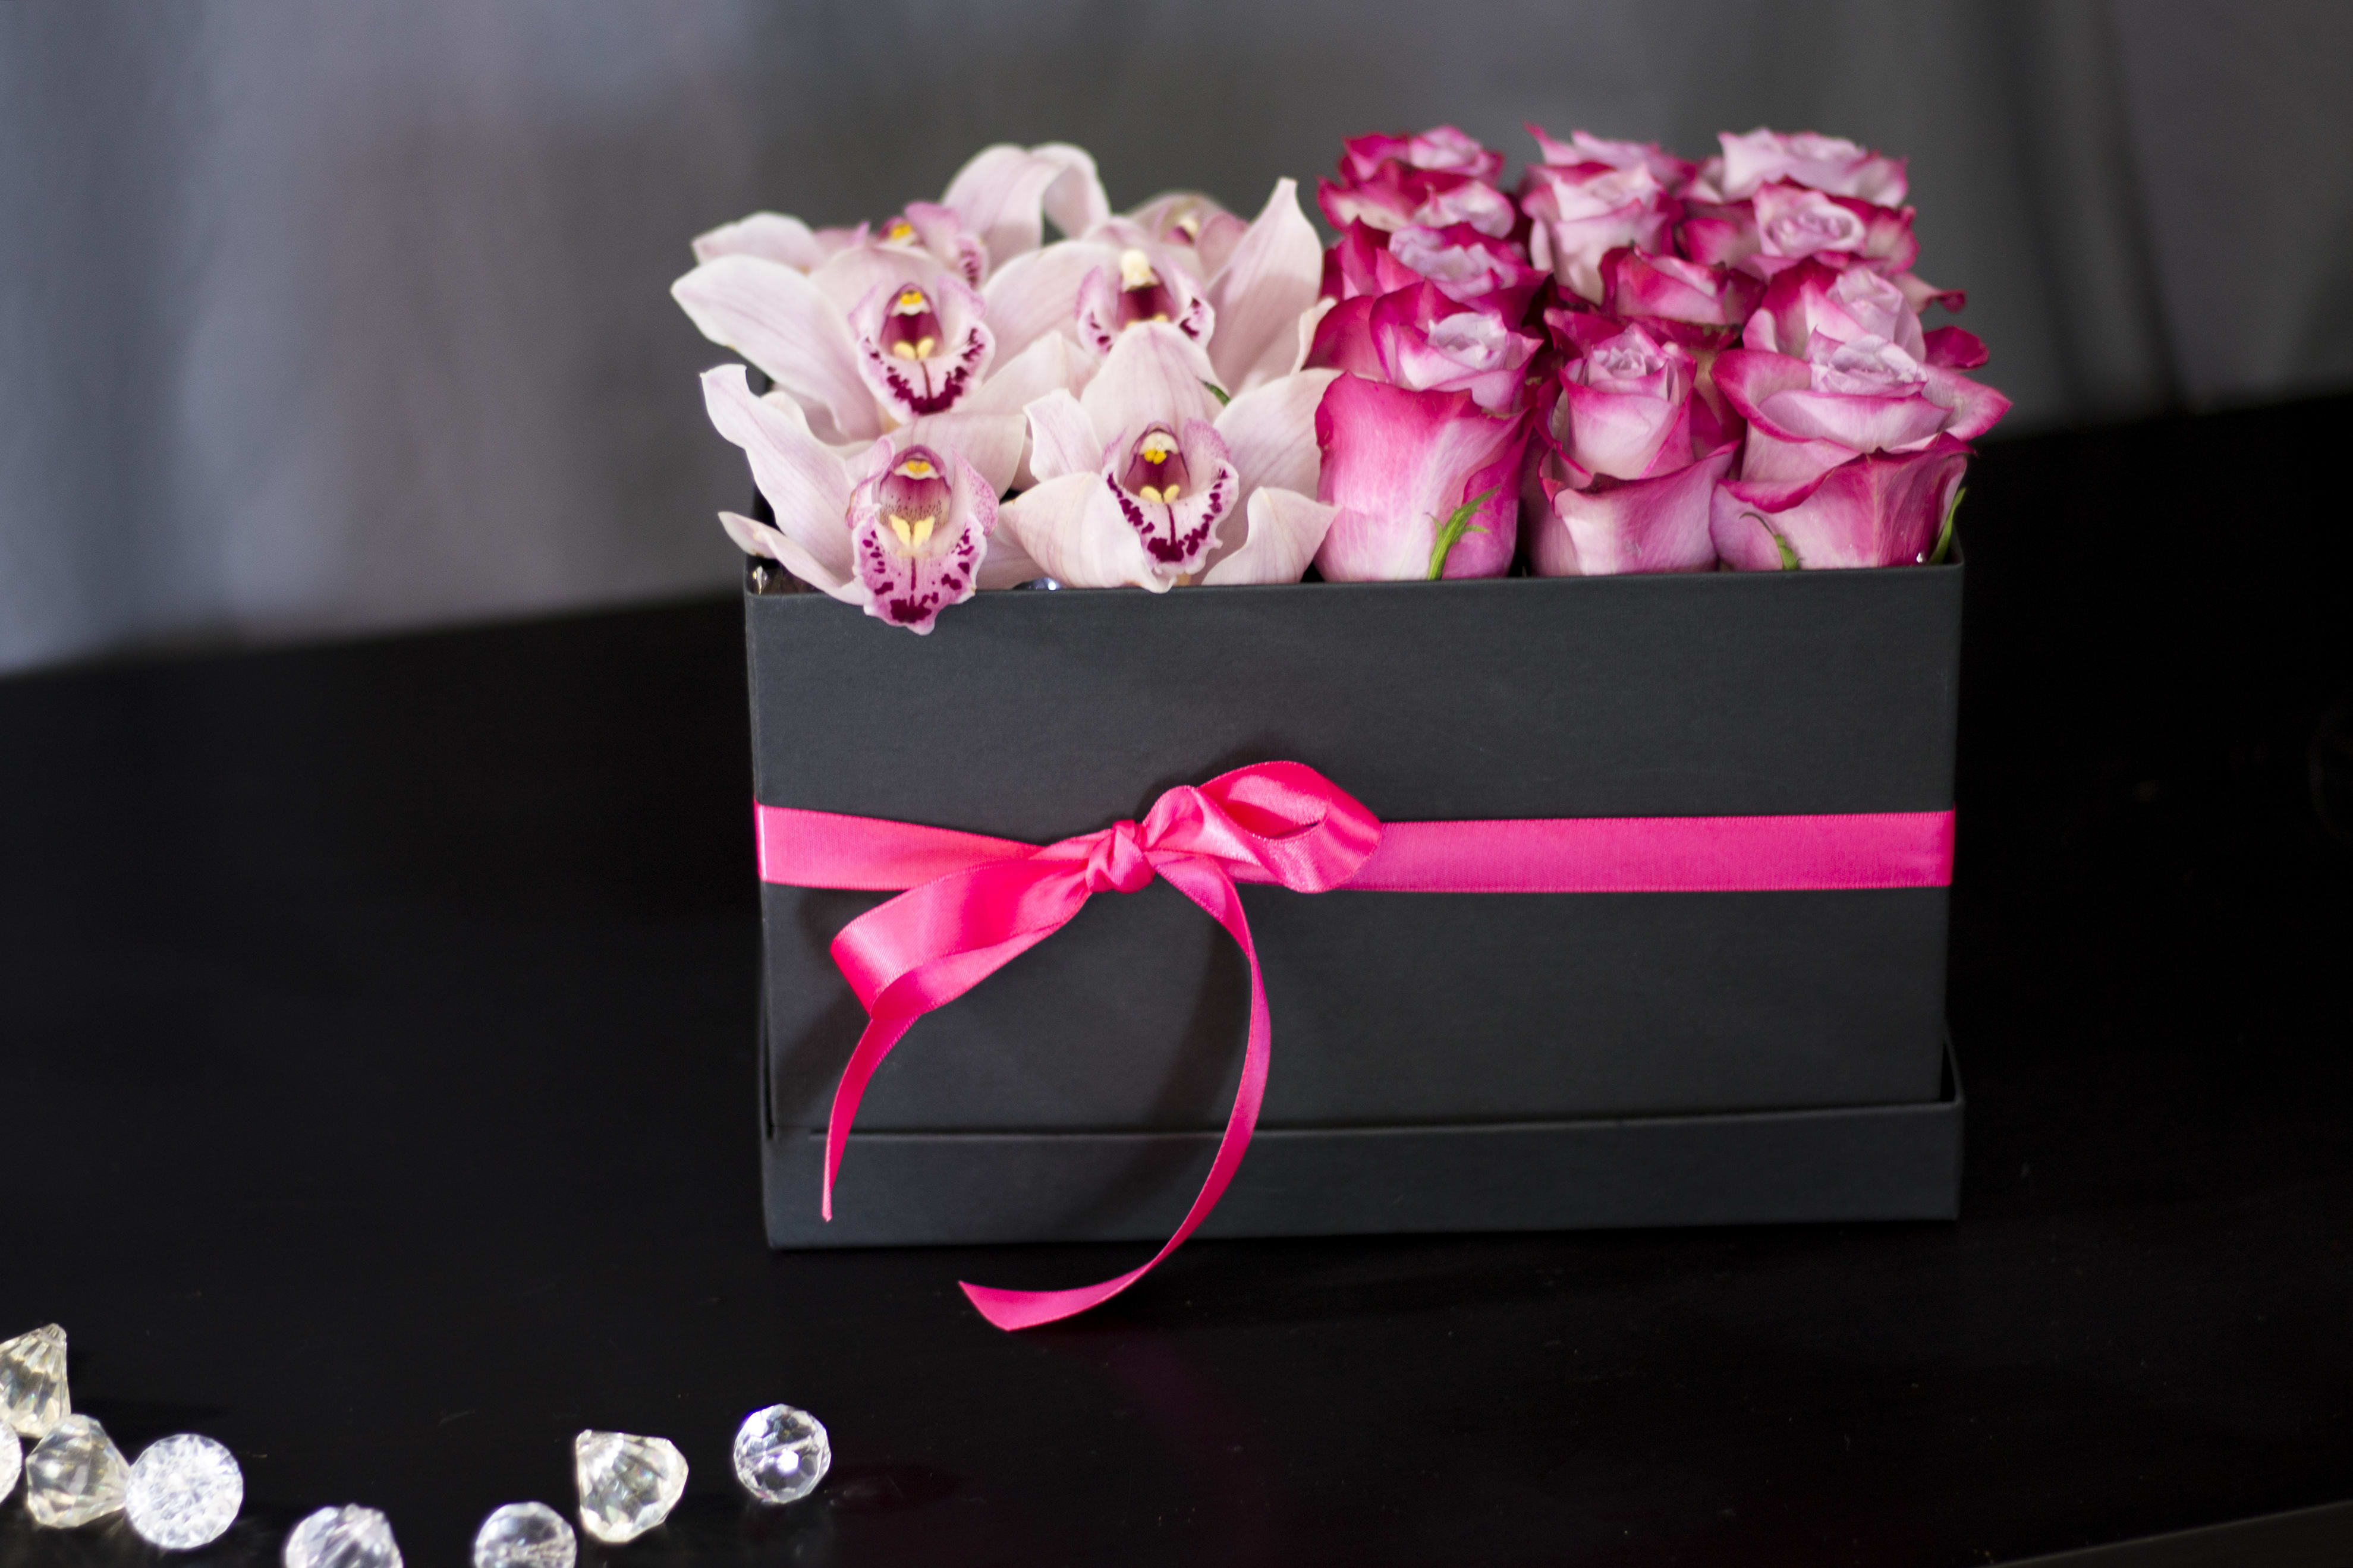 Roses And Orchids Arrangement Flower Box With Flowers Gift Flower